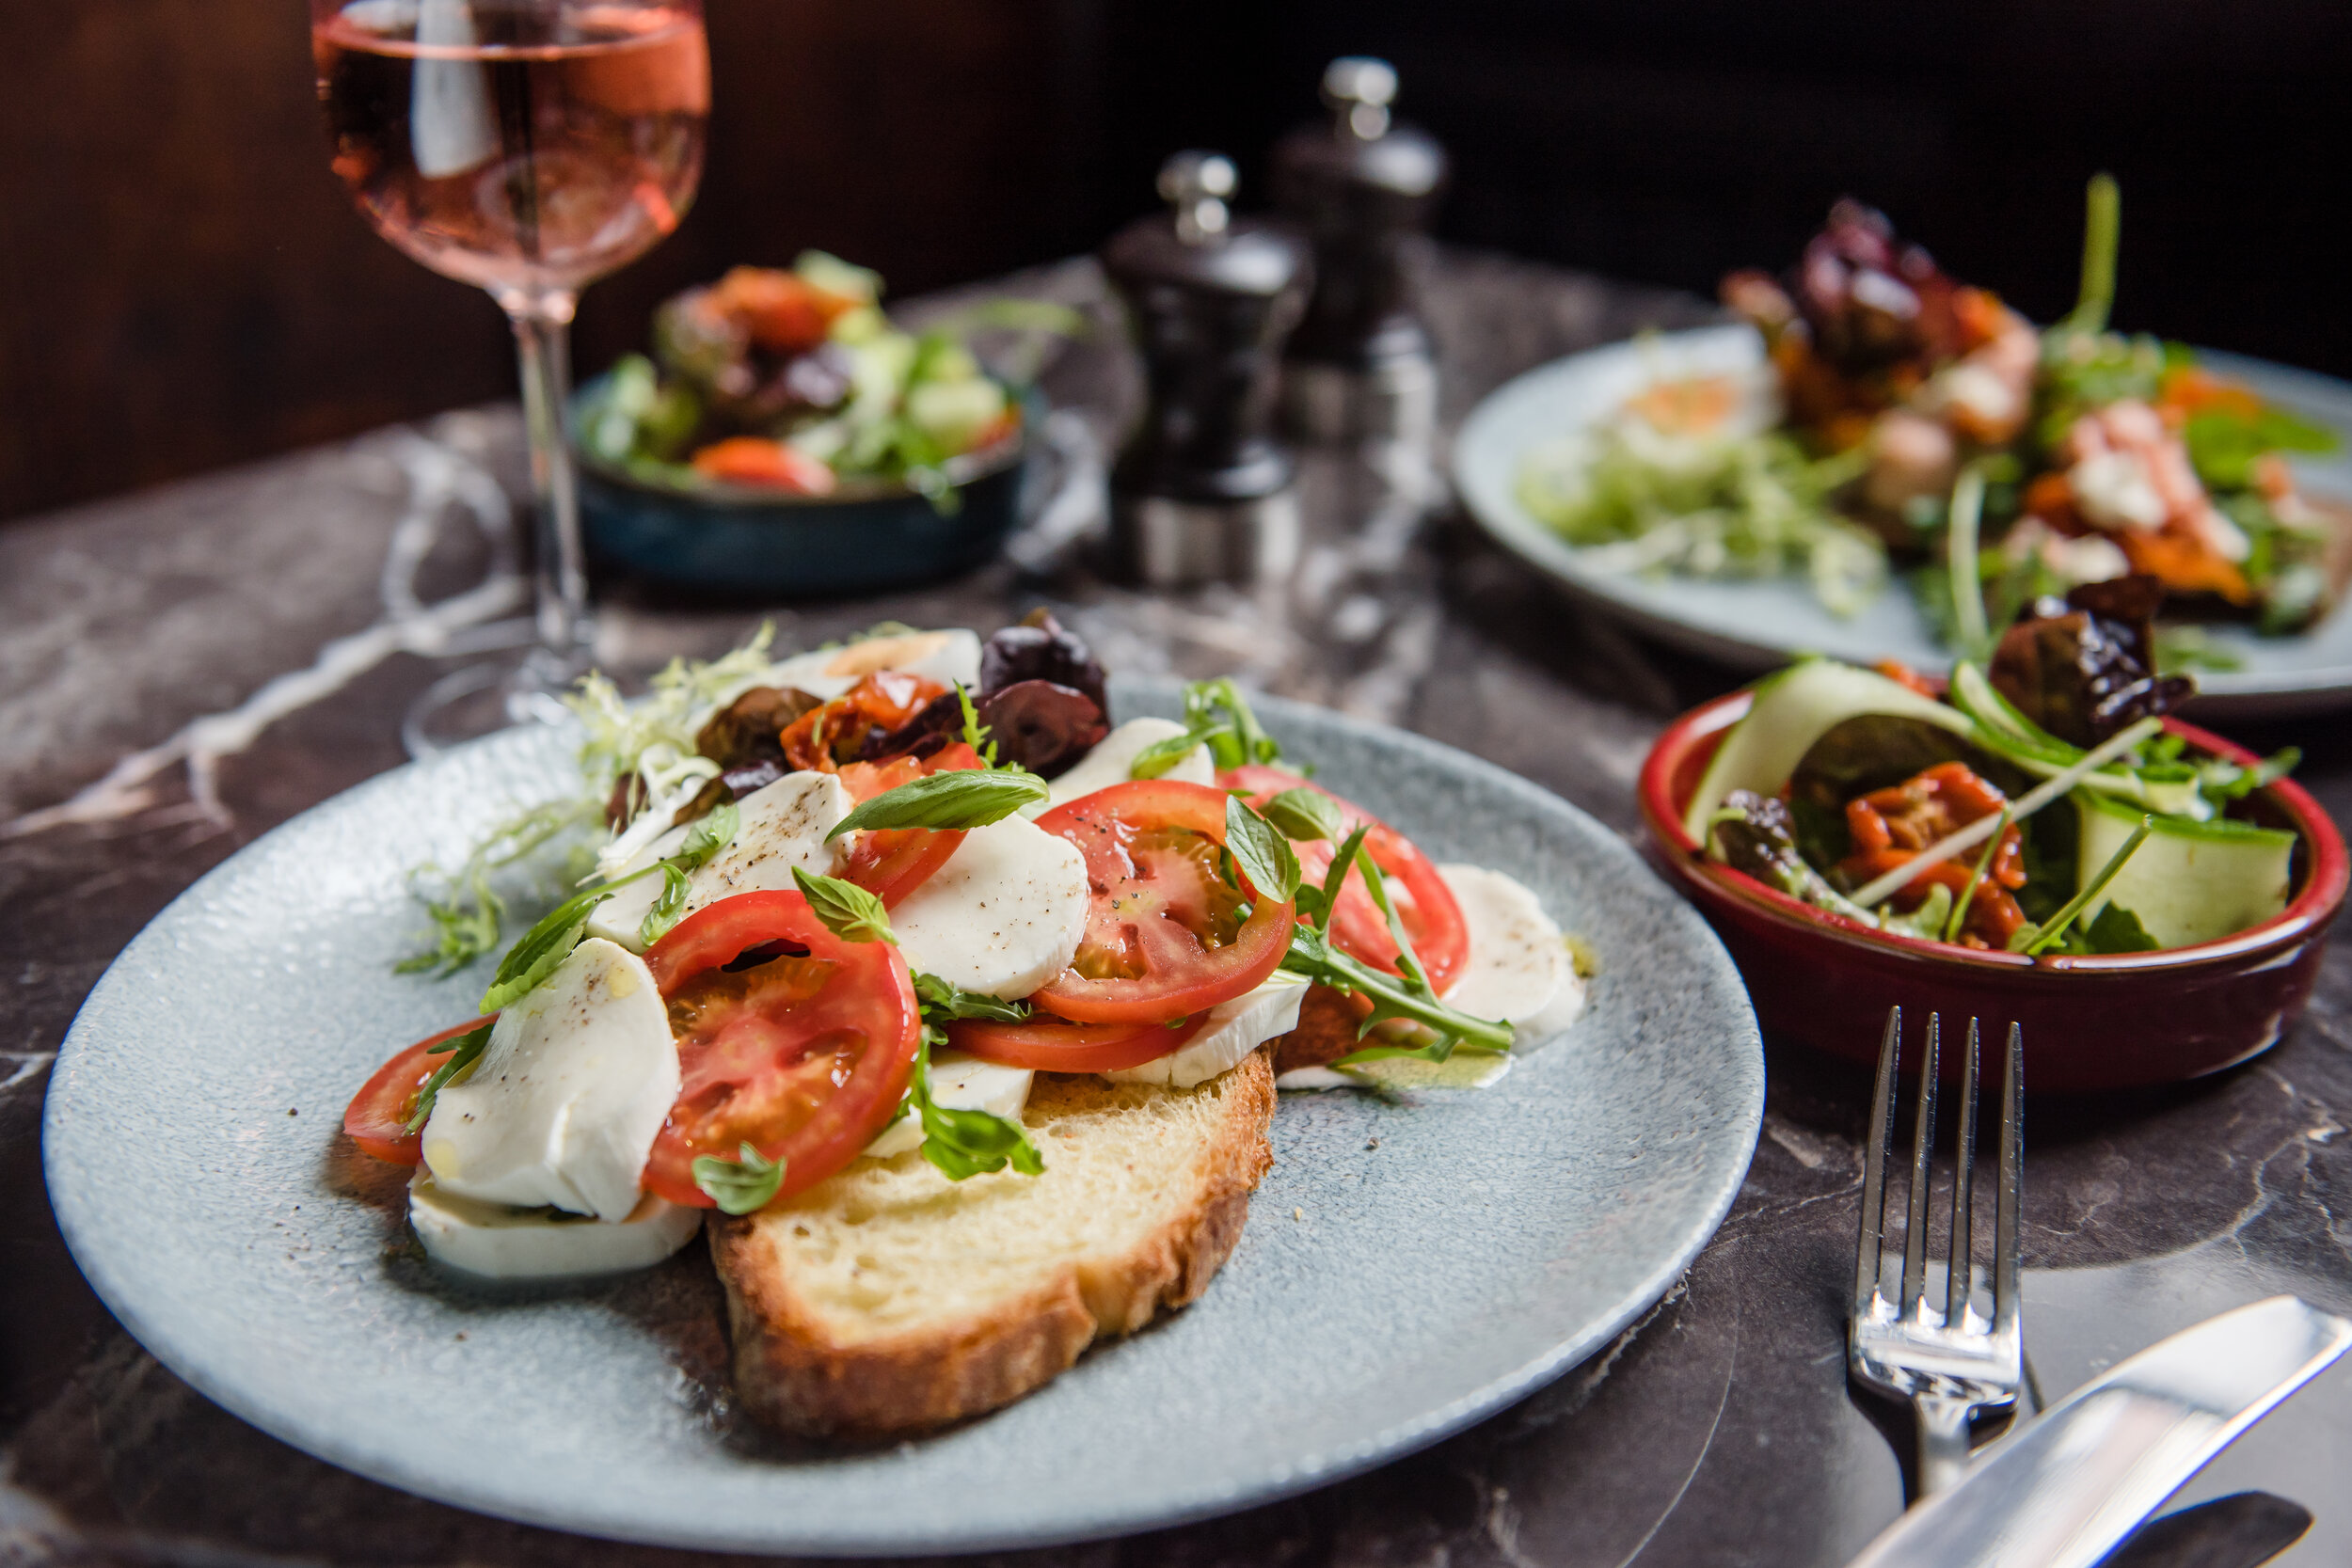 the ark (v) - £6.45 - *this choice donates £1 to The Shrewsbury Ark charity, Tomato, mozzarella, rocket and basil oil, complete with signature side salad.